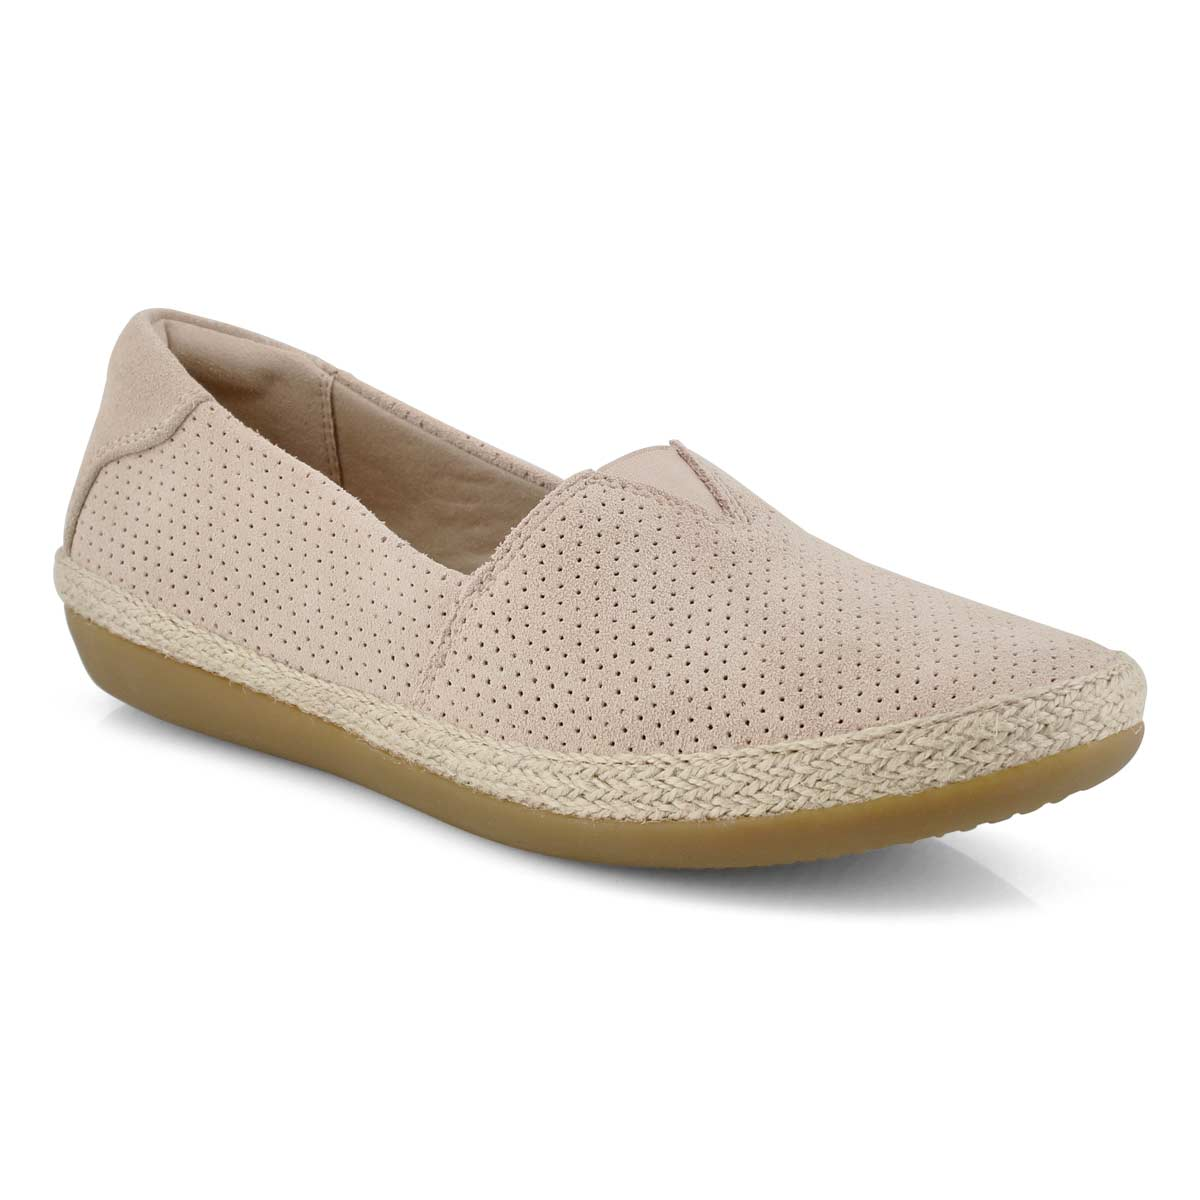 Lds Danelly Sky blush slip on